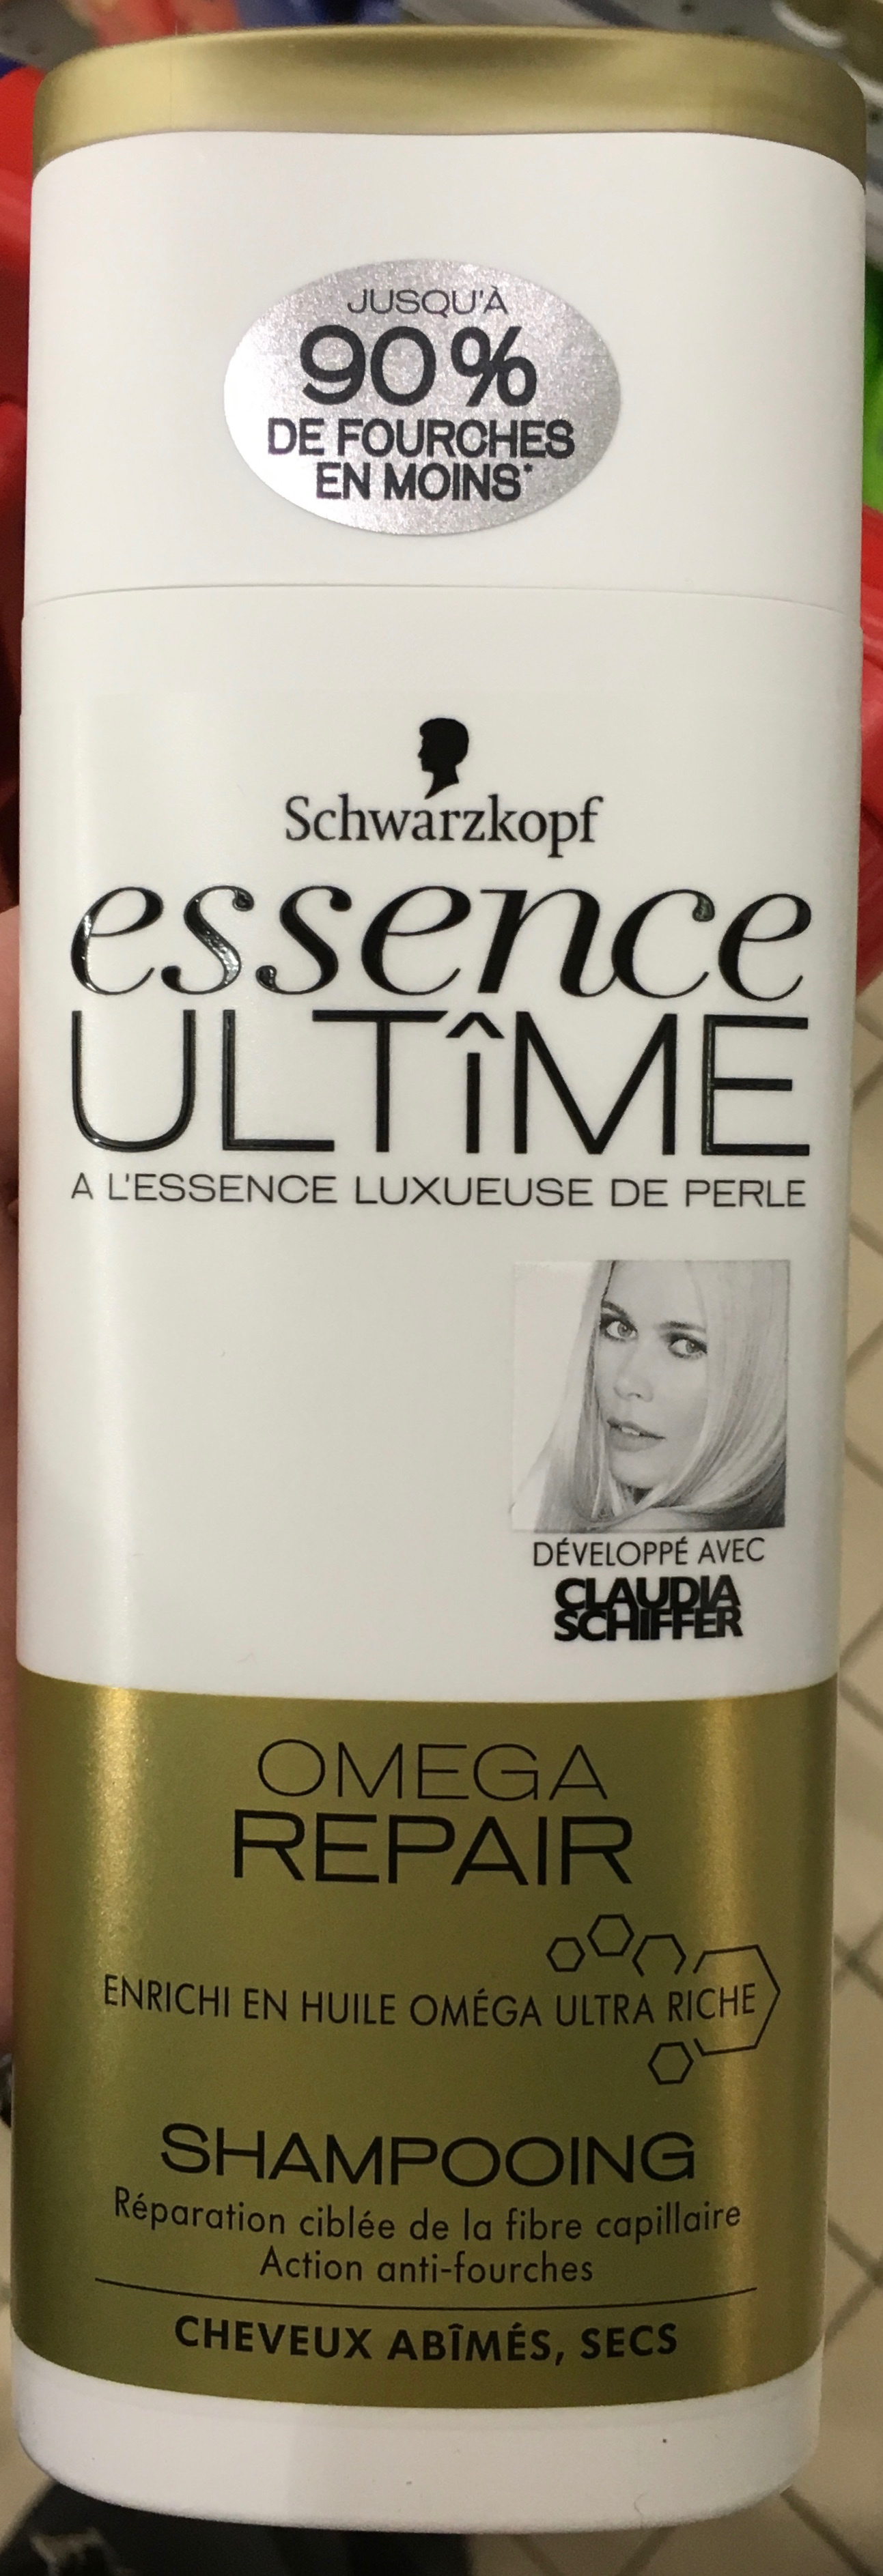 Essence Ultime Omega Repair Shampooing - Product